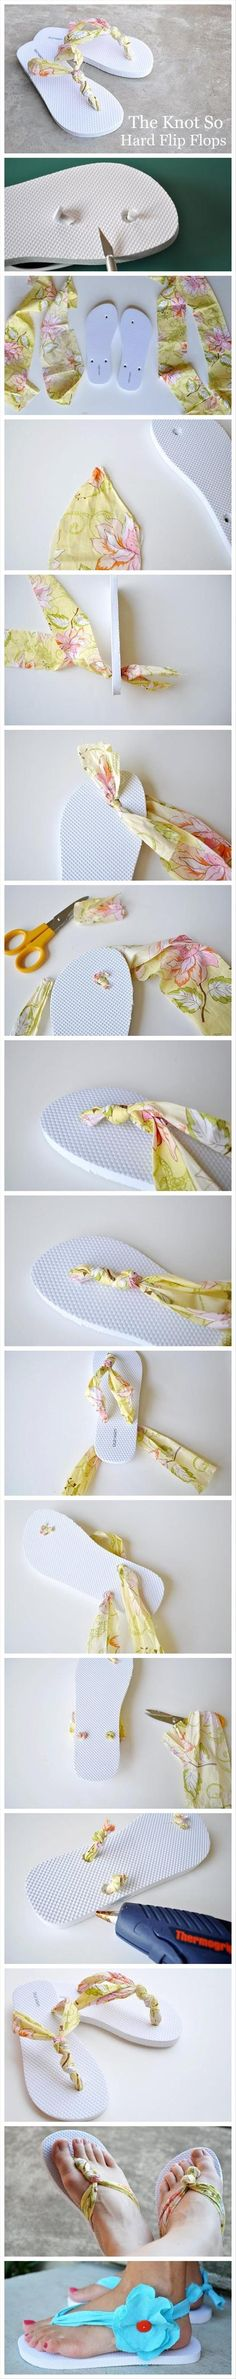 DIY Knot So Hard Flip Flops diy diy ideas diy crafts do it yourself craft clothes craft shoes diy clothes diy shoes easy crafts easy diy fashion diy craft fashion summer diy Cute Crafts, Crafts To Do, Arts And Crafts, Diy Crafts, Diy Projects To Try, Sewing Projects, Craft Projects, Craft Ideas, Diy Y Manualidades